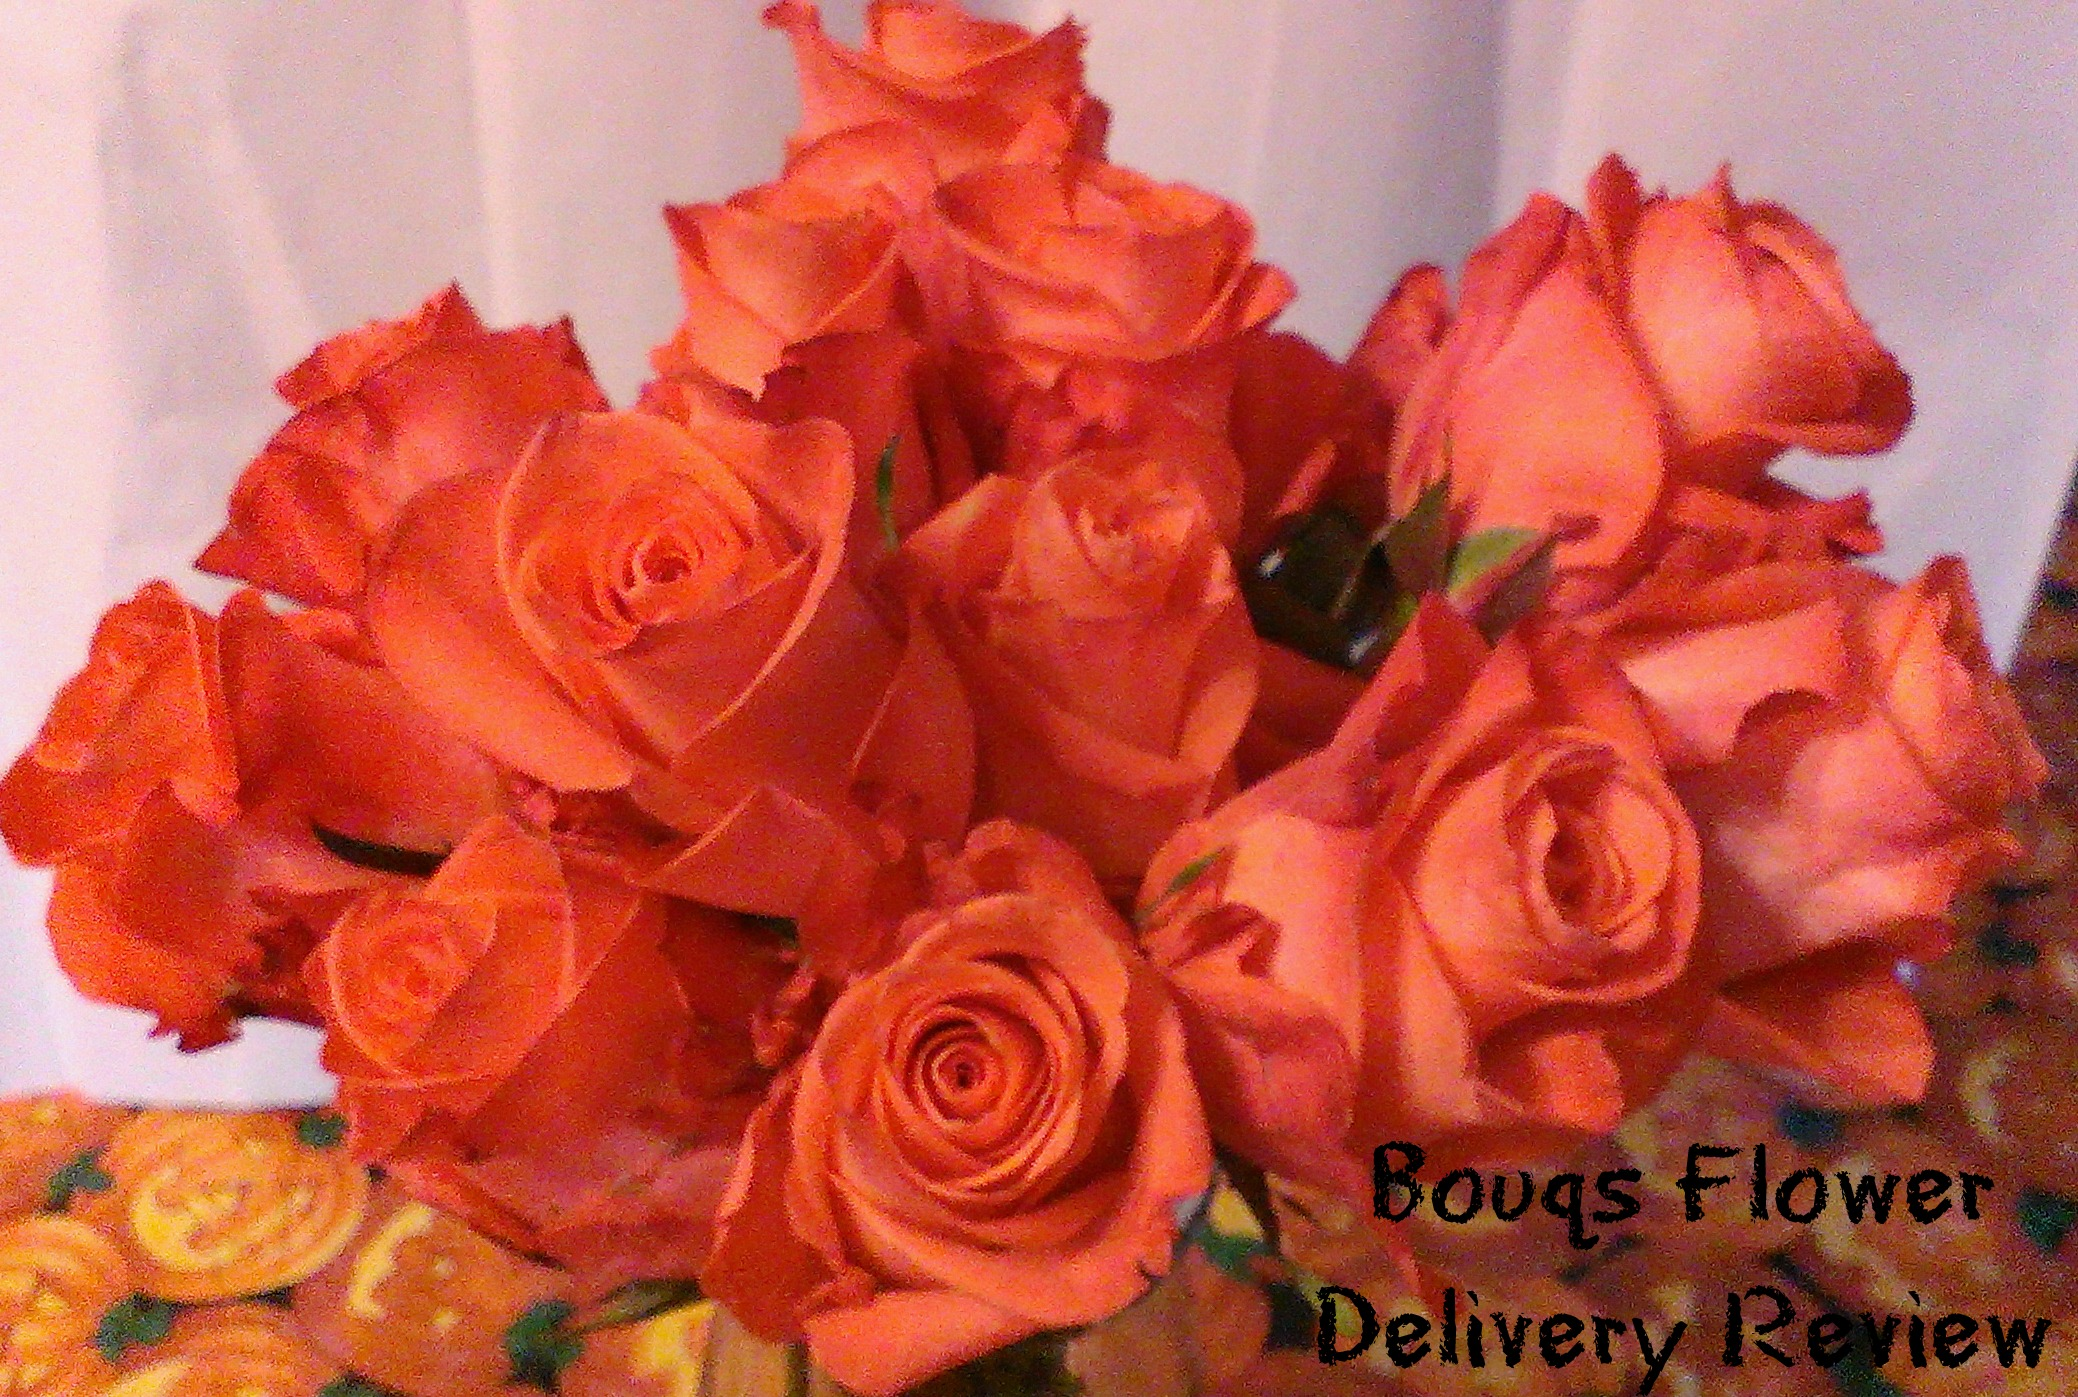 Bouqs Flower Delivery Review Window on the World